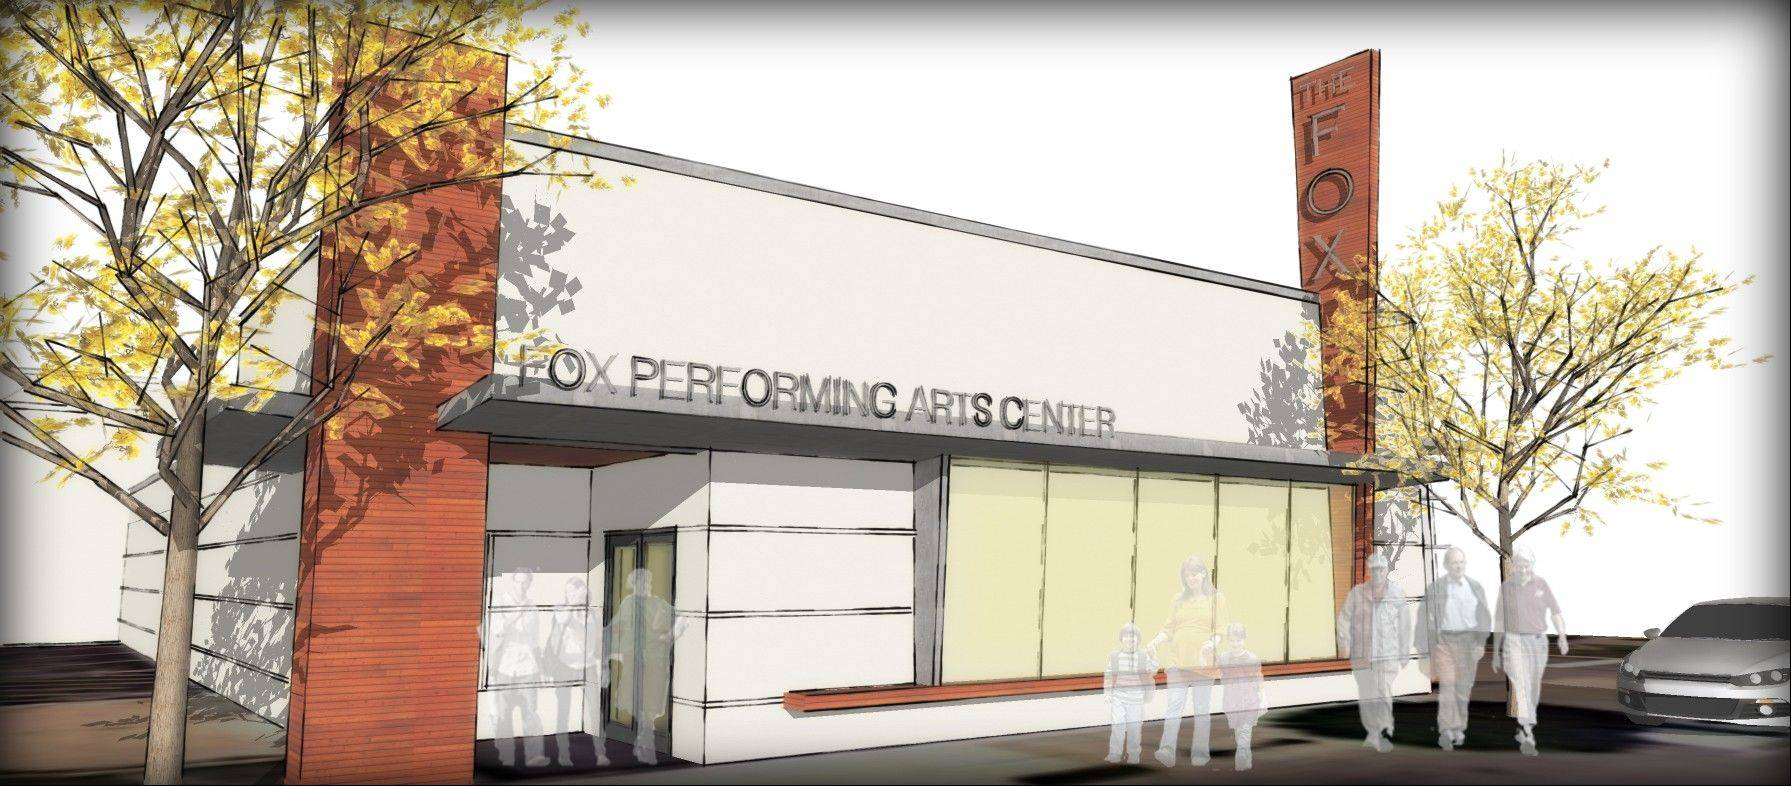 A rendering of what the old Ziegler�s Ace Hardware store in West Dundee would look like if it�s converted into the Fox Performing Arts Center.